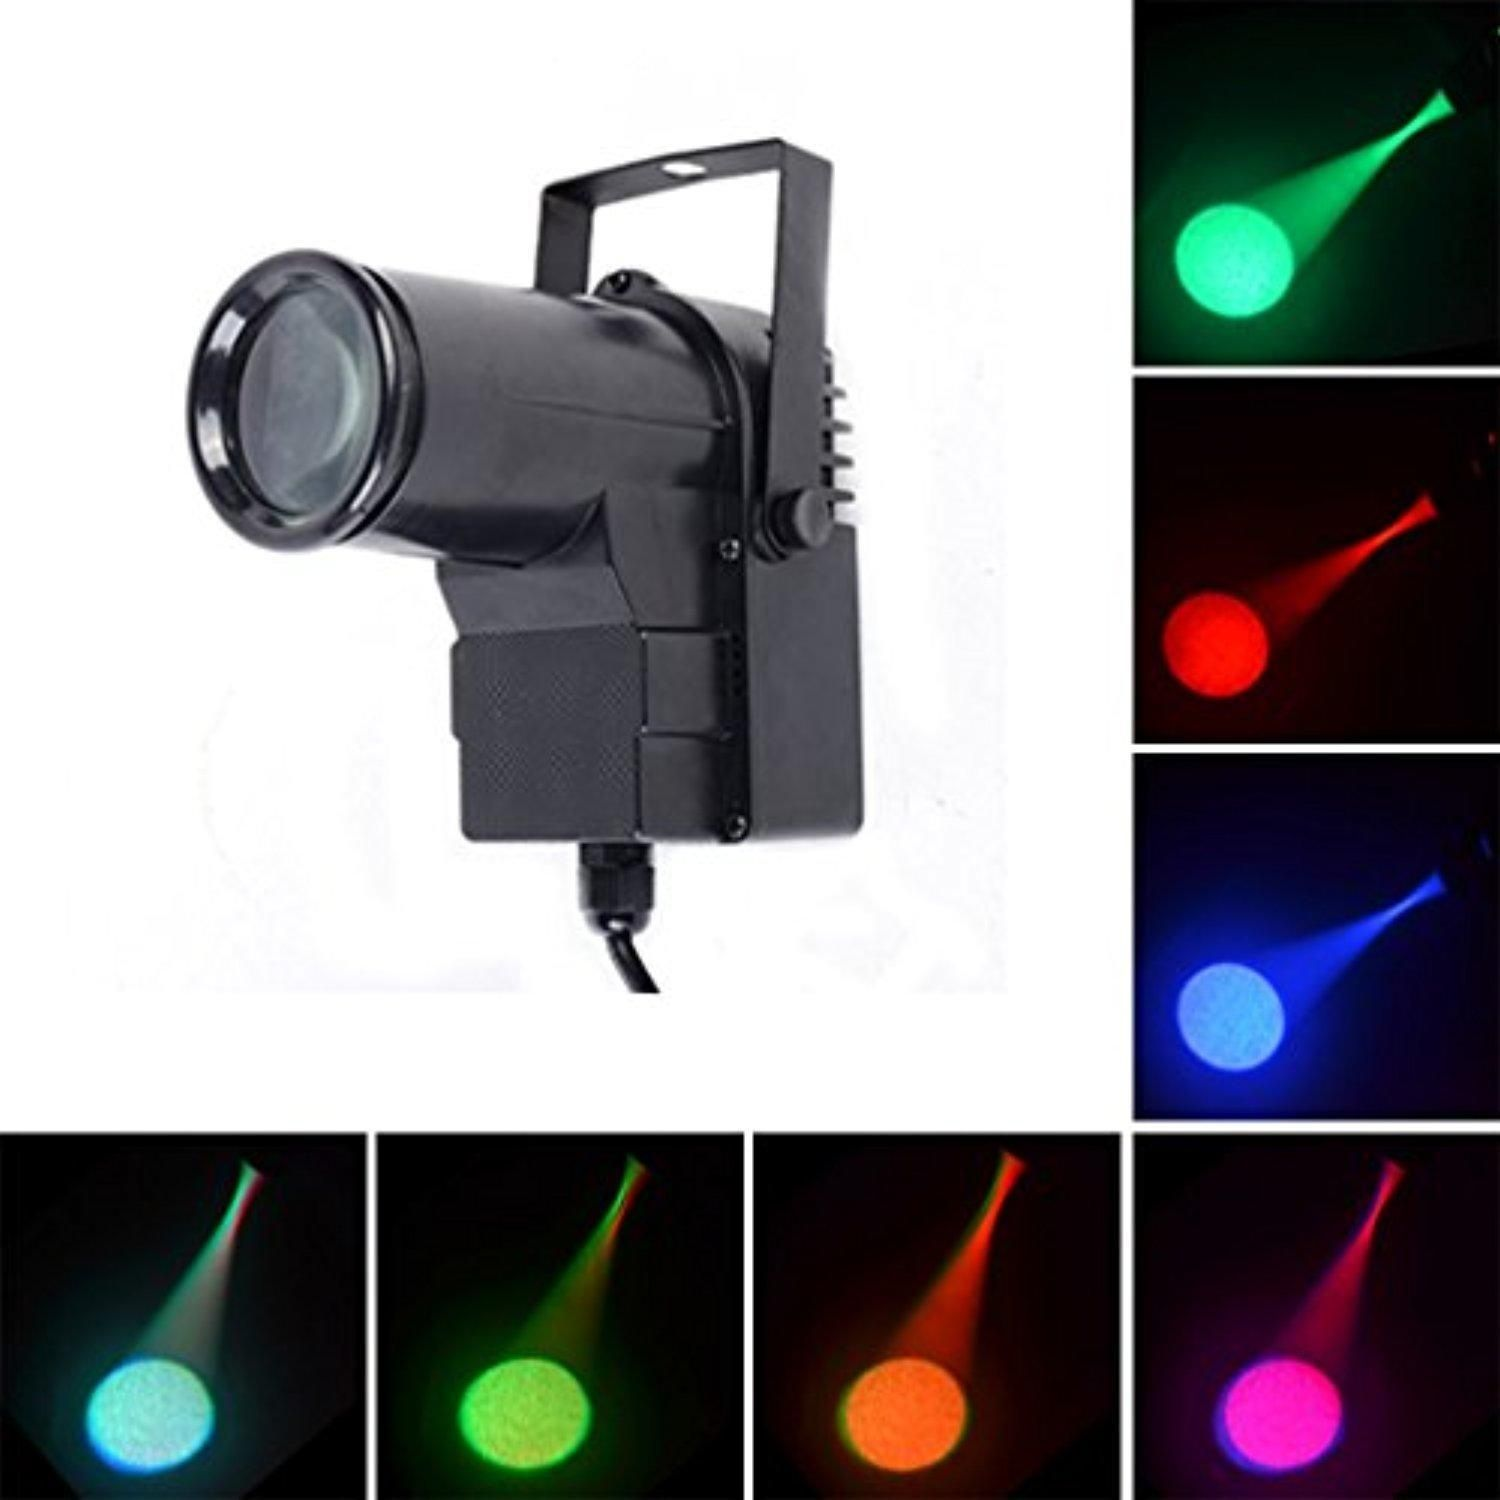 Mini 10w Rgbw 4 In 1 Dmx512 Music Led Beam Lights Lamp Strong Spotlights Party Home Bar Wall Ktv Dj Stage Lighting Stage Lighting Commercial Lighting Wall Bar